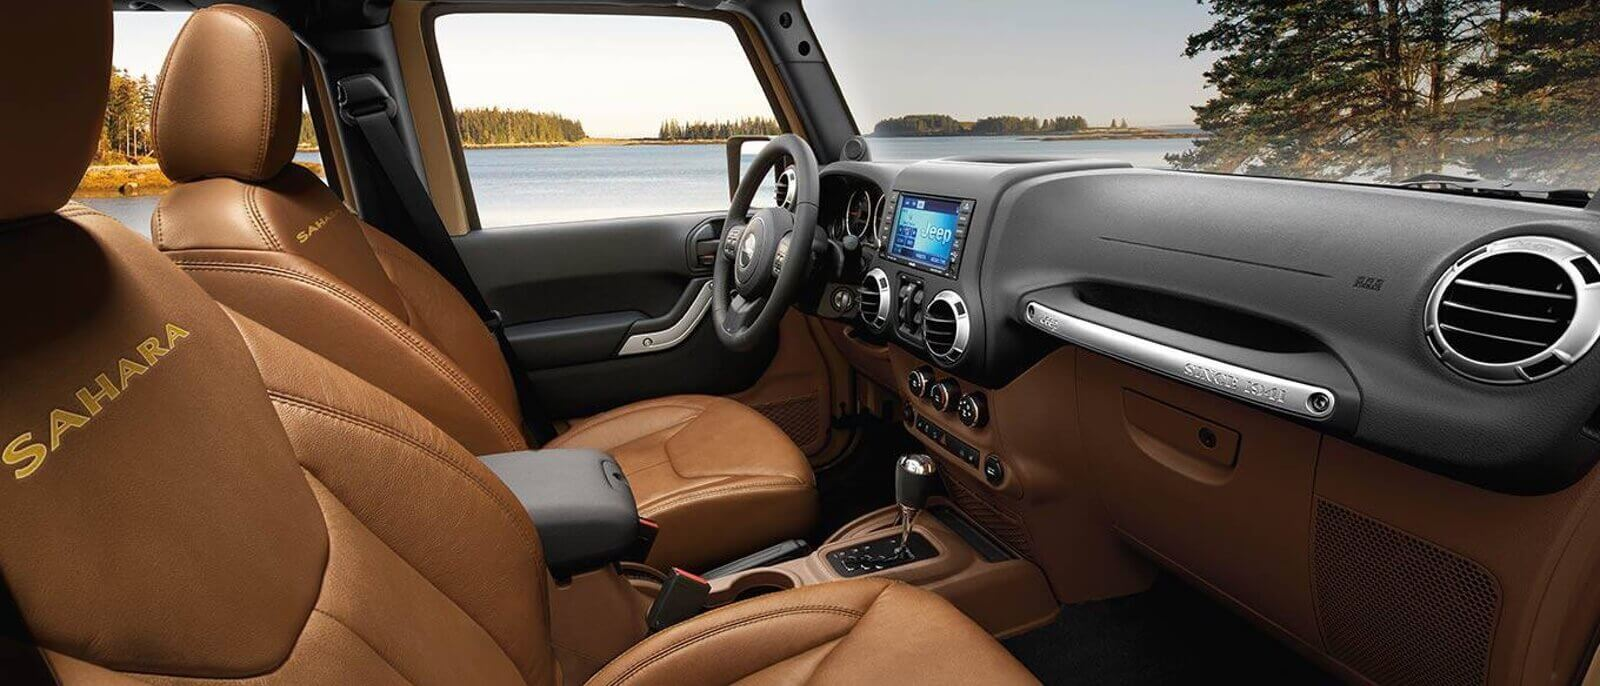 2016 Jeep Wrangler Unlimited interior